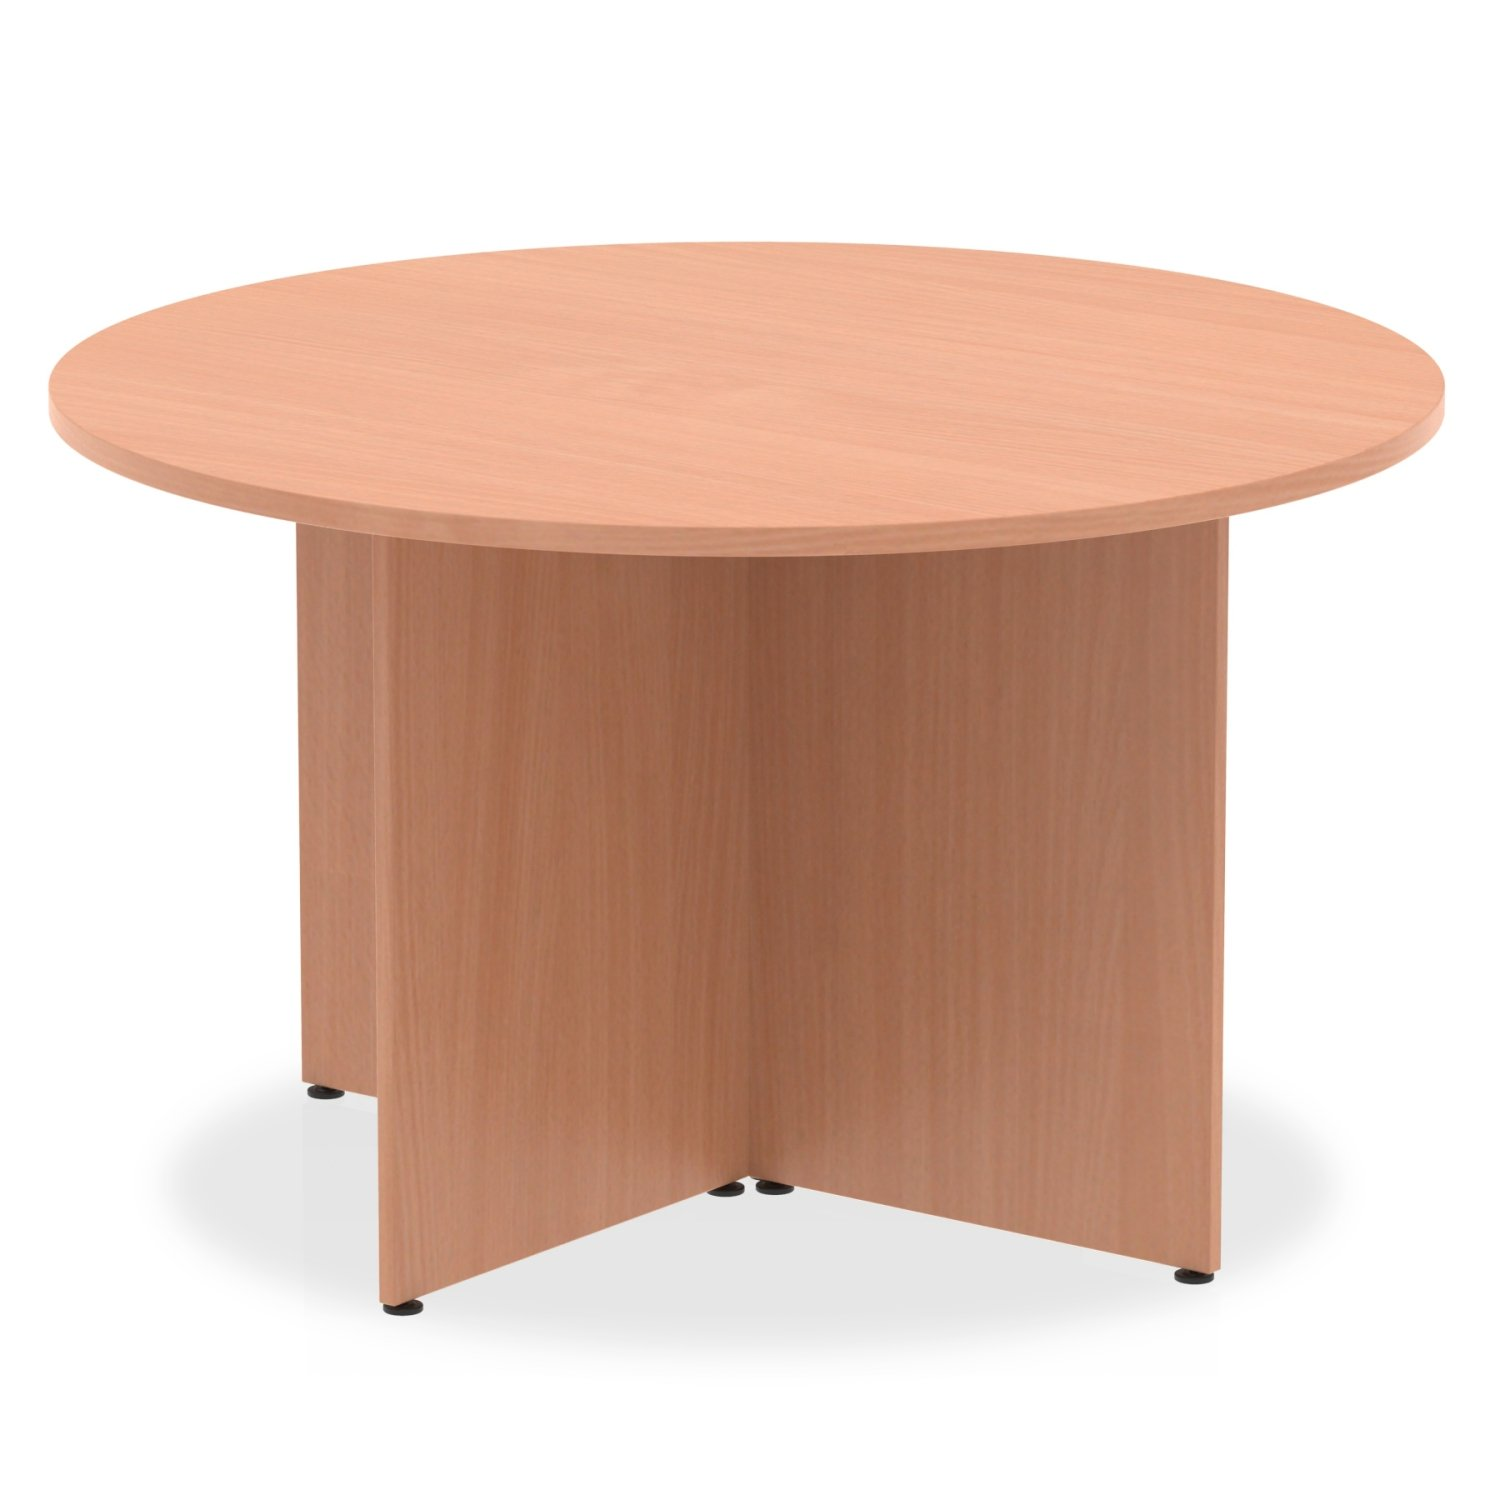 Definition Of Round Table.Gentoo Free Standing Round Table 1000 X 1000mm